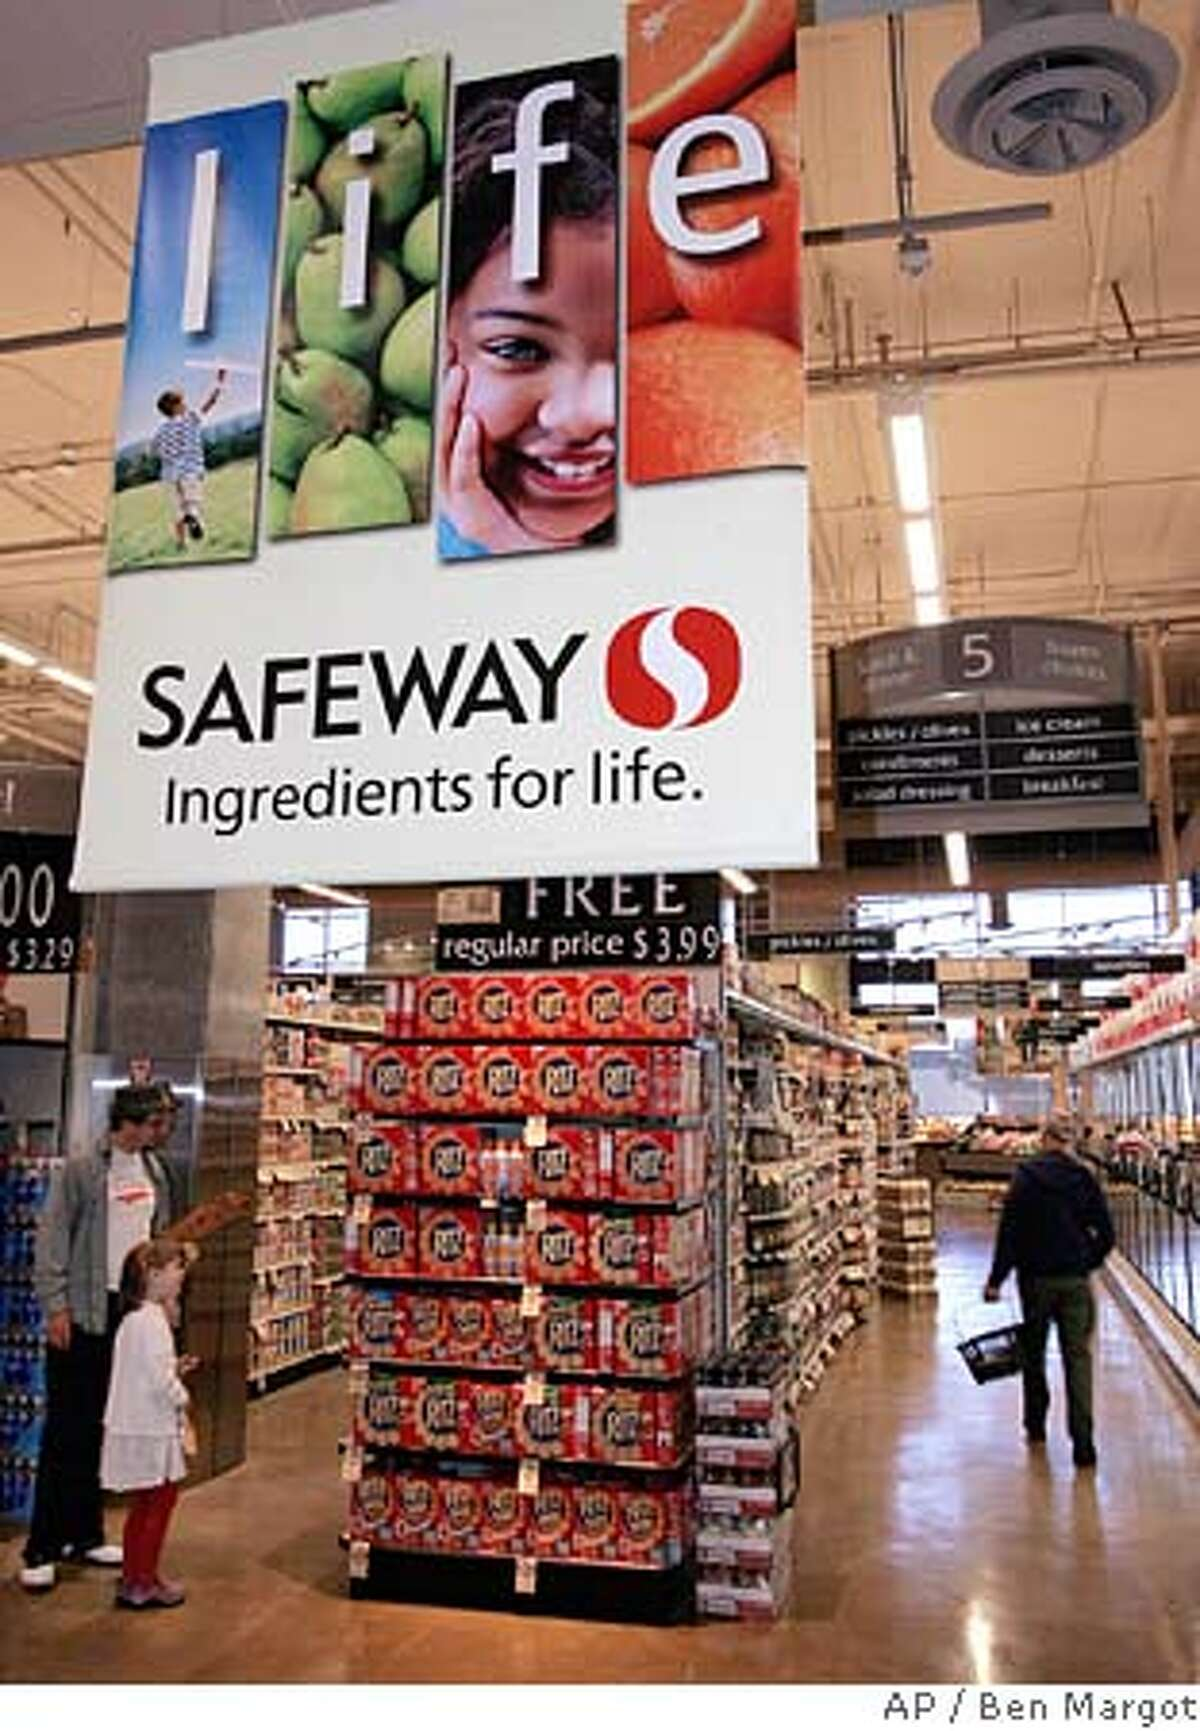 Customers shop at Safeway Monday, July 25, 2005, in San Francisco. Safeway Inc.'s second-quarter profit dropped 14 percent as higher gasoline prices and the costs of an ambitious makeover offset an uptick in sales at the big grocer. The Pleasanton-based company said Tuesday, July 26, 2005 that it earned $134 million, or 30 cents per share, during the three months ended June 18, down from $155.2 million, or 35 cents per share, at the same time last year. (AP Photo/Ben Margot)